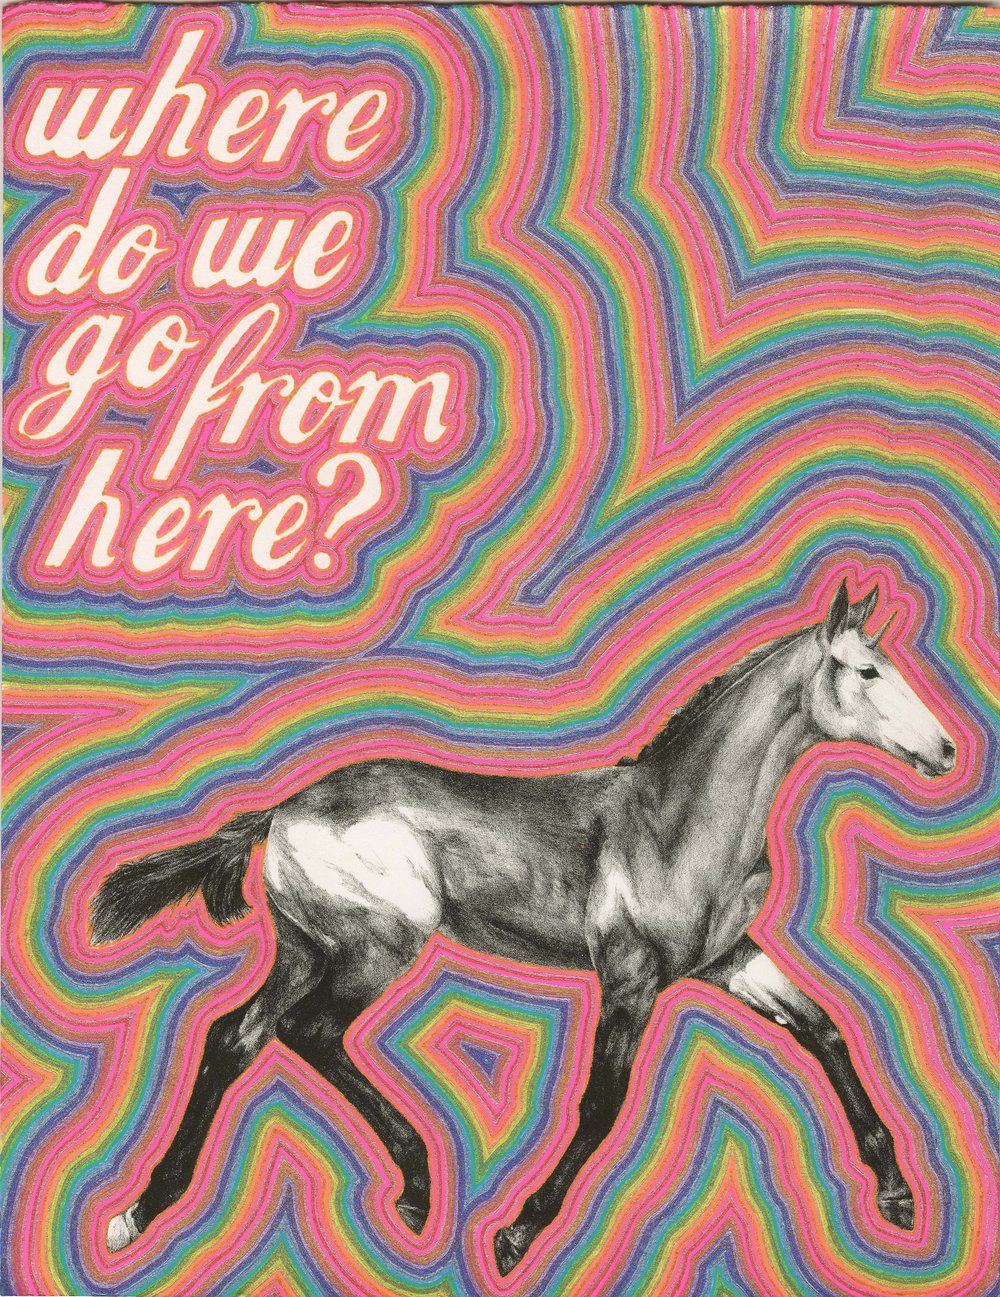 where-do-we-go-from-here003-copy.jpg